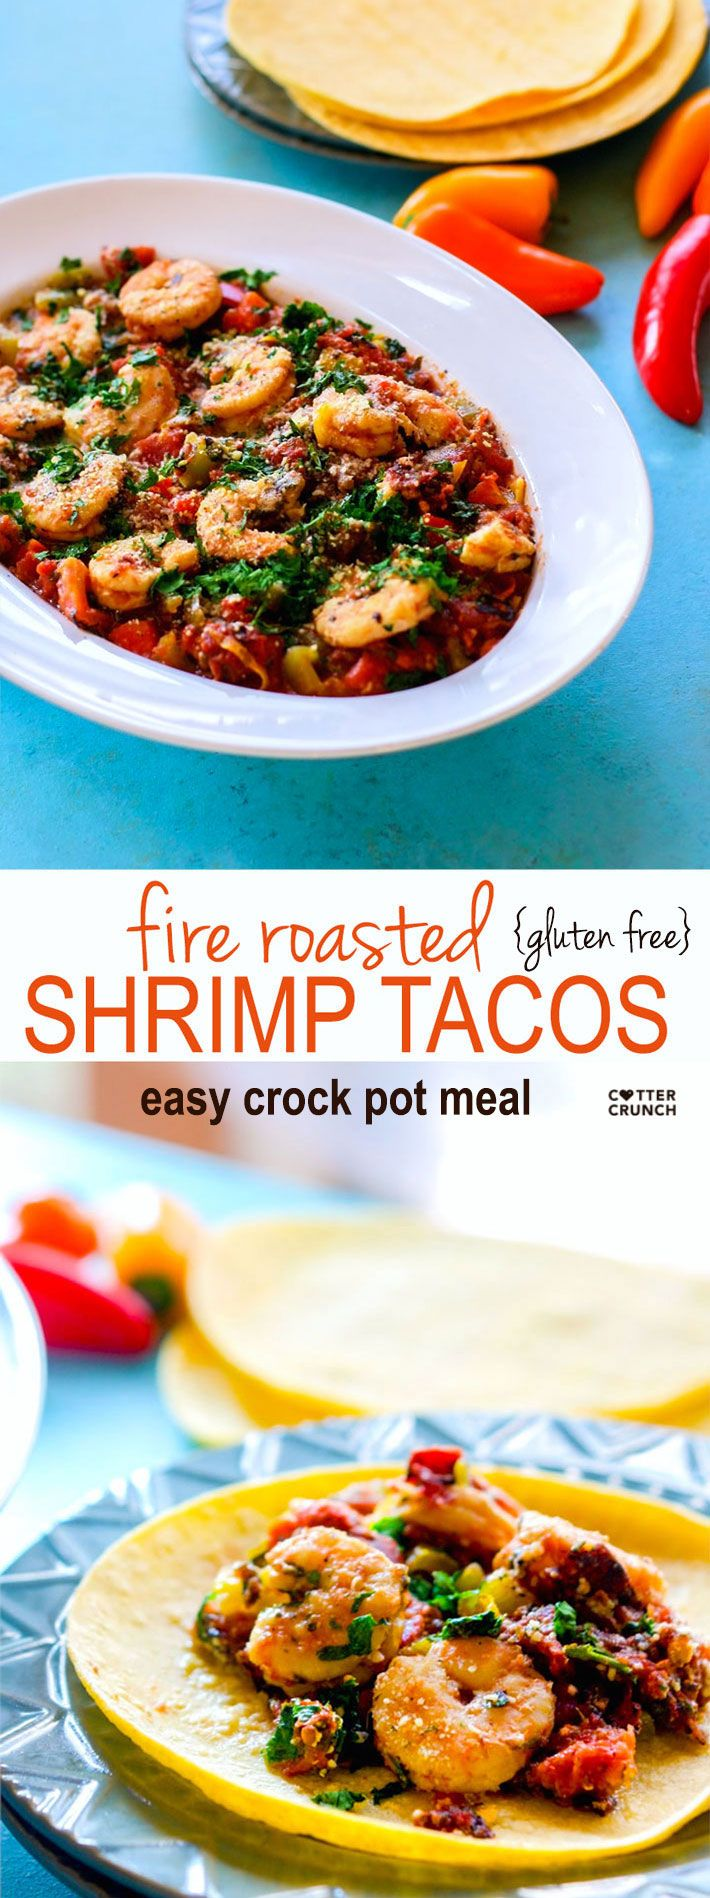 Gluten Free Crock Pot Fire Roasted Shrimp Tacos! We love making crock pot tacos. This recipe requires little prep, but produces tons of flavor and nutrients! Great for busy days and easy dinners! #cottercrunch.com @sizzlefishfit